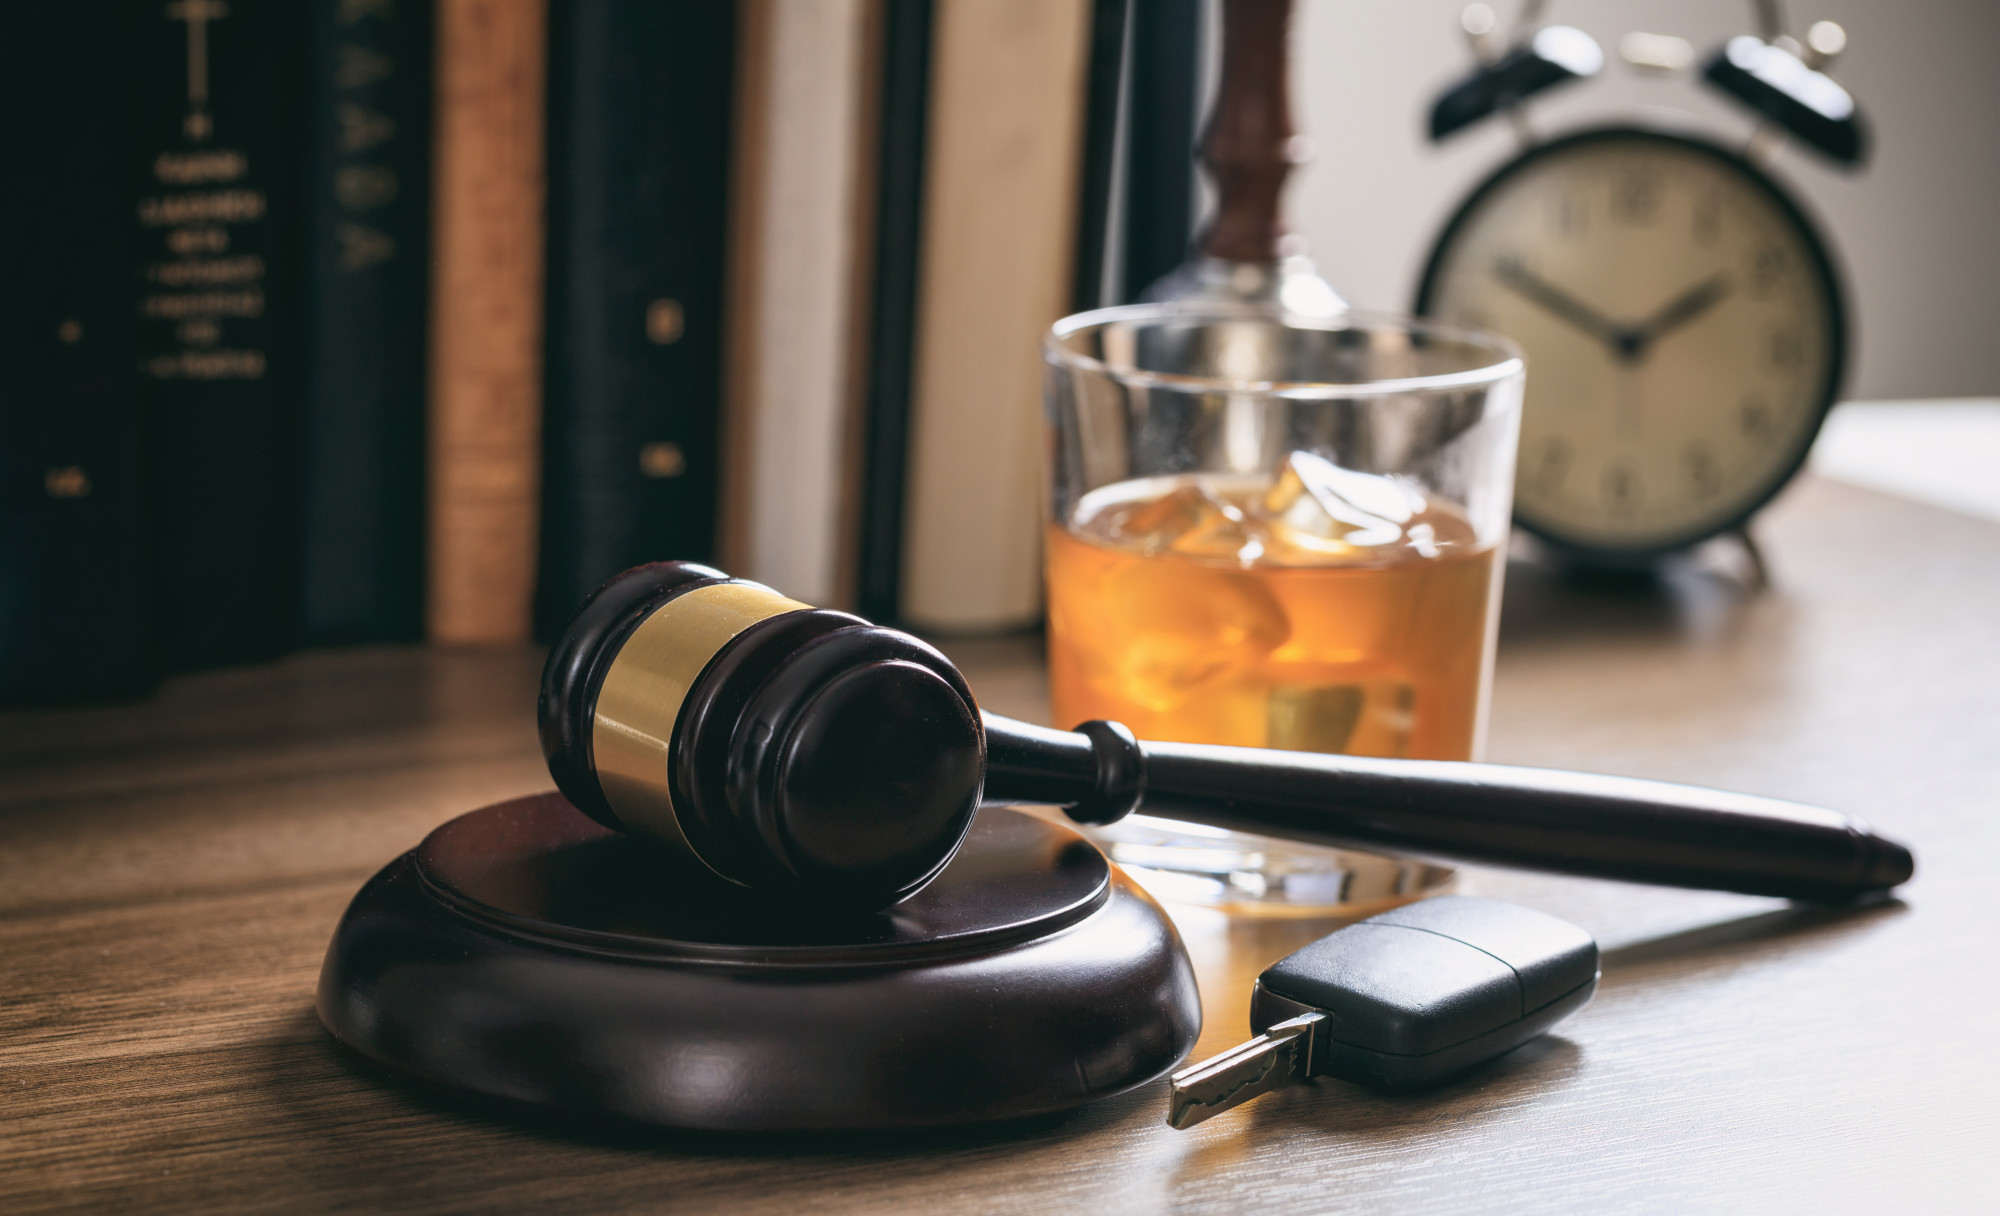 5 Documents to Show Your Texas DWI Lawyer